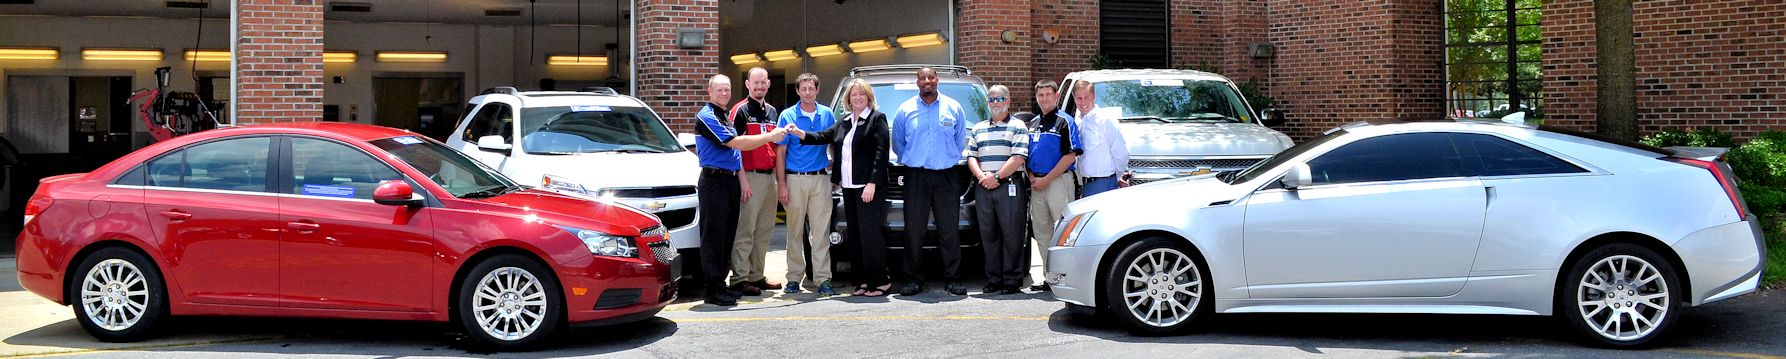 General Motors District Manager-After Sales Marjorie Duff and CCOG Service Manager Michael Vincent (center) turn over the keys to five vehicles for use in Wayne Community College's Automotive Systems Technology Program. Accepting the donation are (left to right) GM-ASEP Coordinator David Byrd, Instructor Bryant Keel, Instructor Kevin Jordan, Applied Technologies Division Chair Ernie White, Instructor Kevin Jordan, and Transportation Department Chair Craig Foucht.